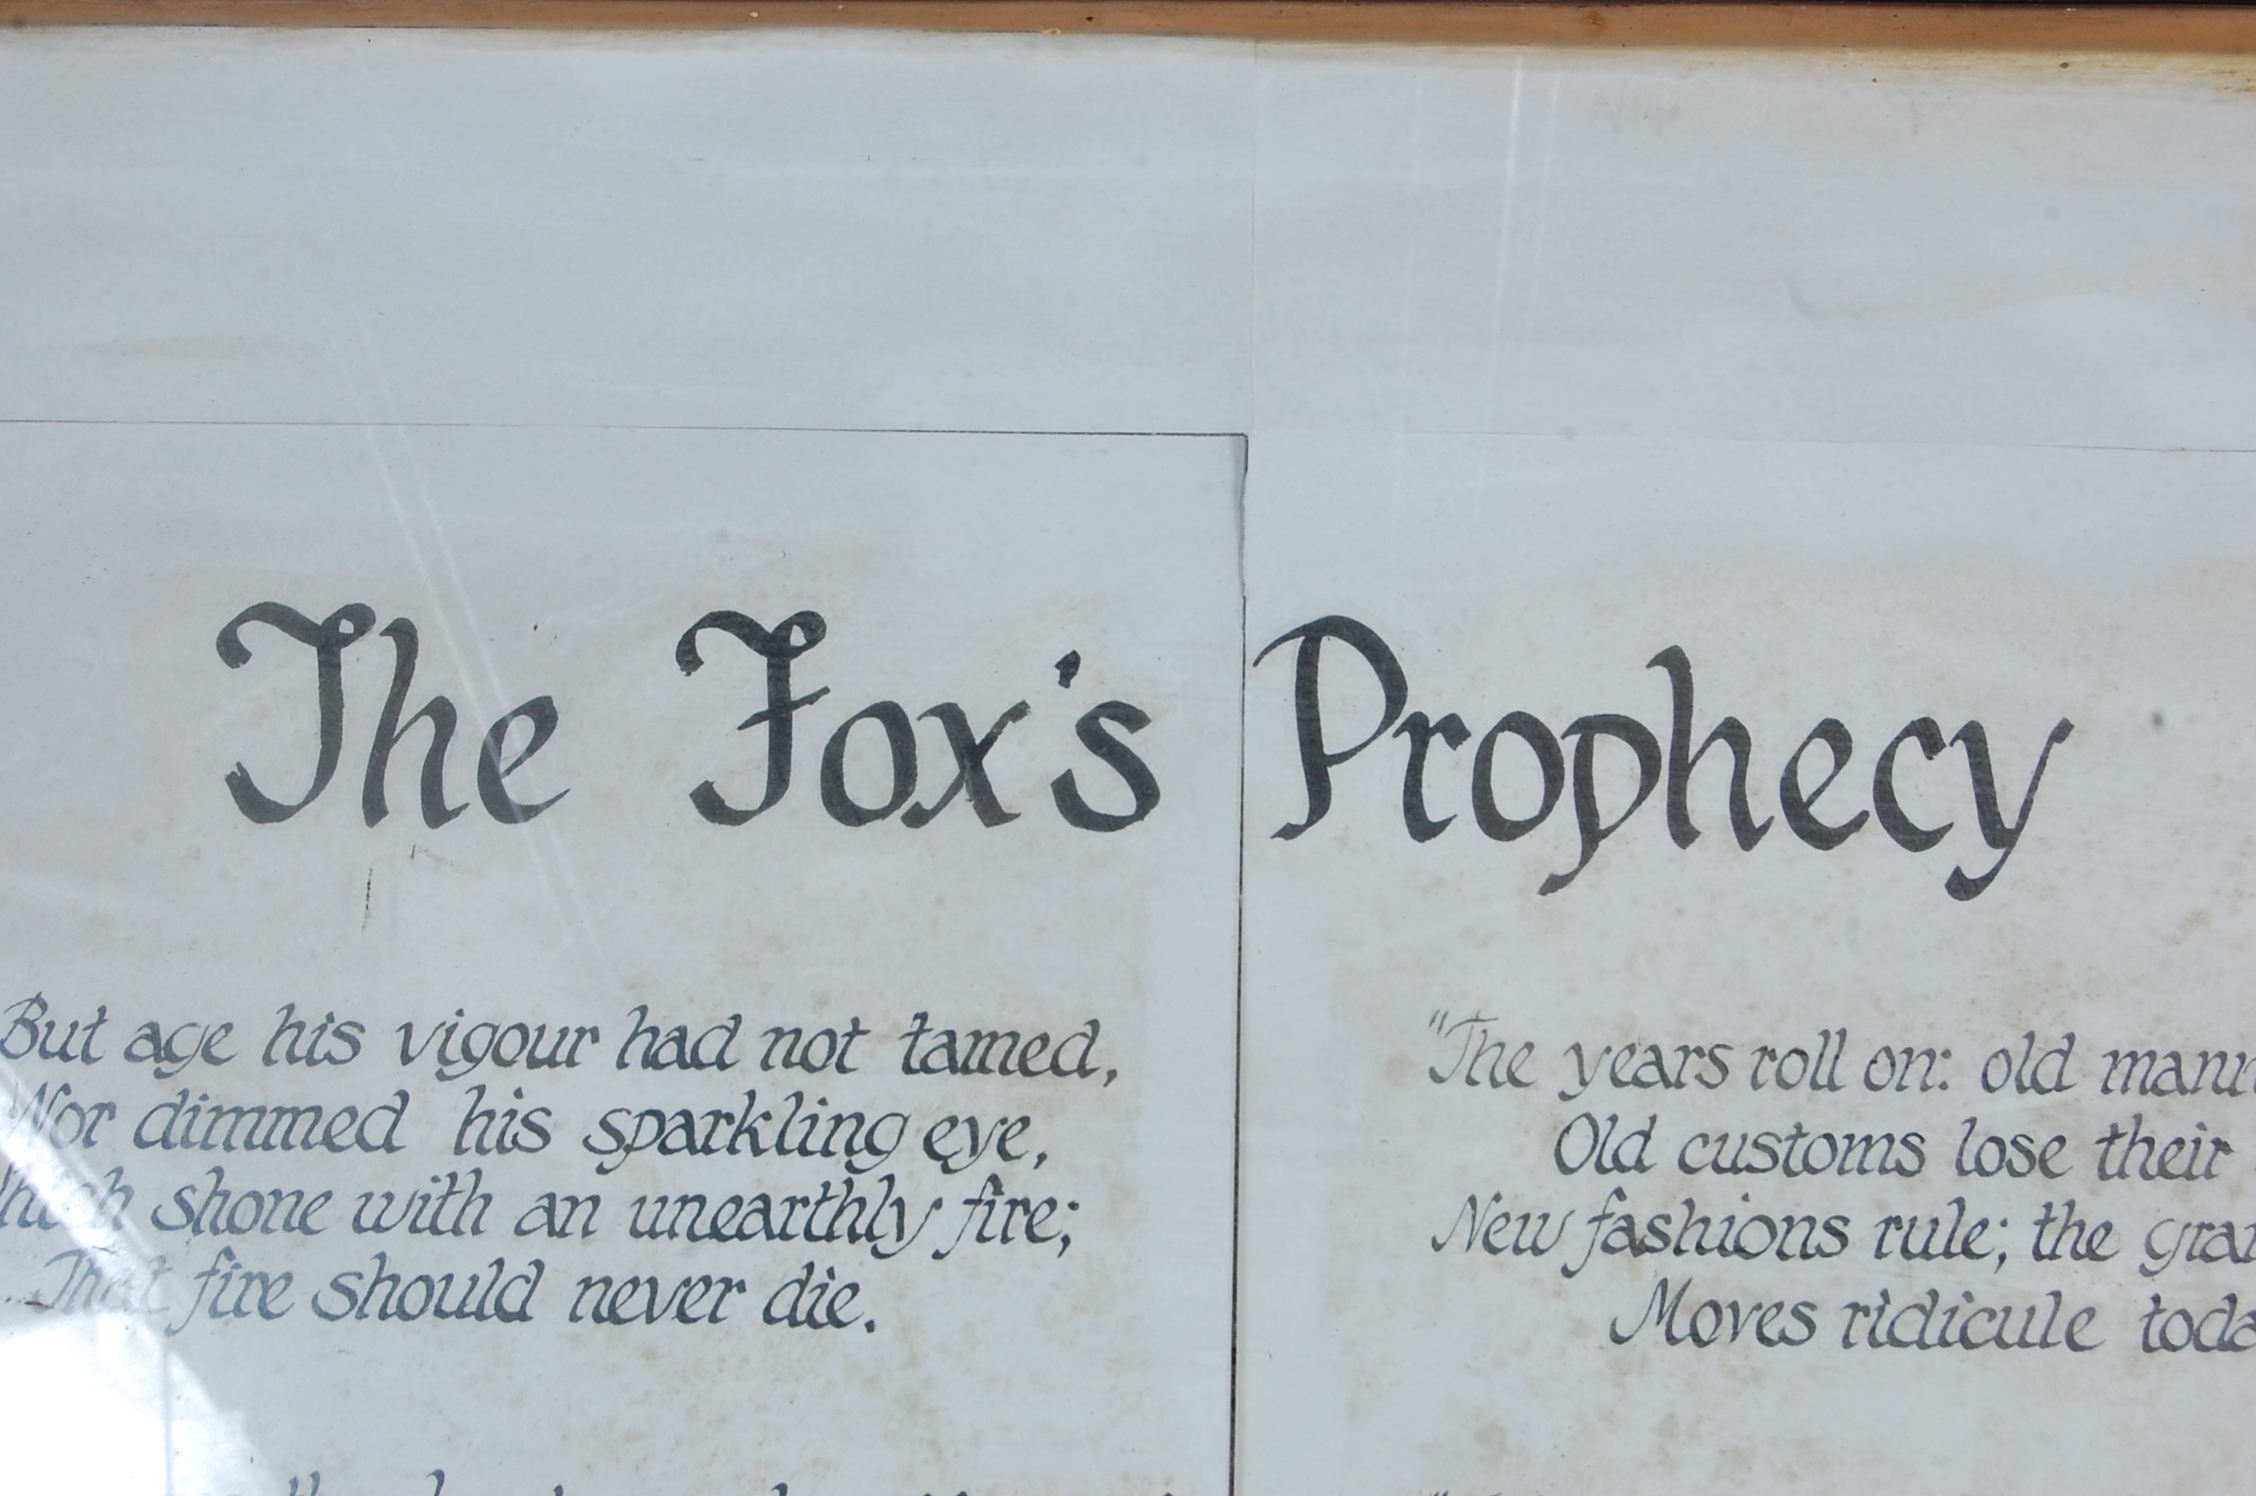 LARGE VINTAGE LATE 20TH CENTURY FOXES PROPHECY PICTURE - Image 7 of 8